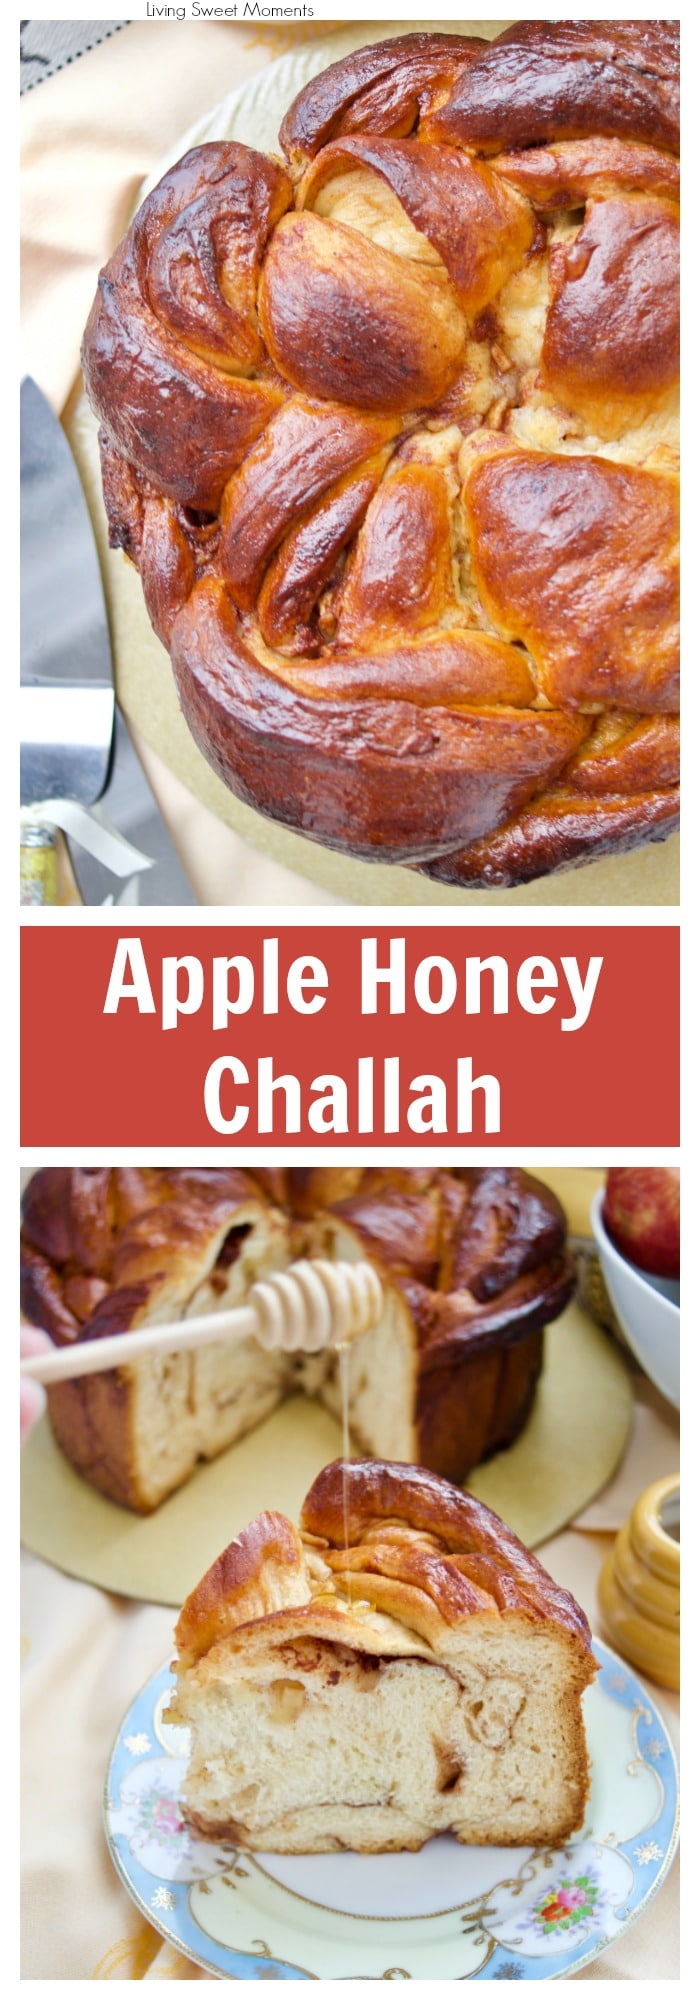 Celebrate a sweet new year with this delicious round Apple Honey Challah recipe. Serve on Erev Rosh Hashanah or have a slice for breakfast. More challah recipes at livingsweetmoments.com